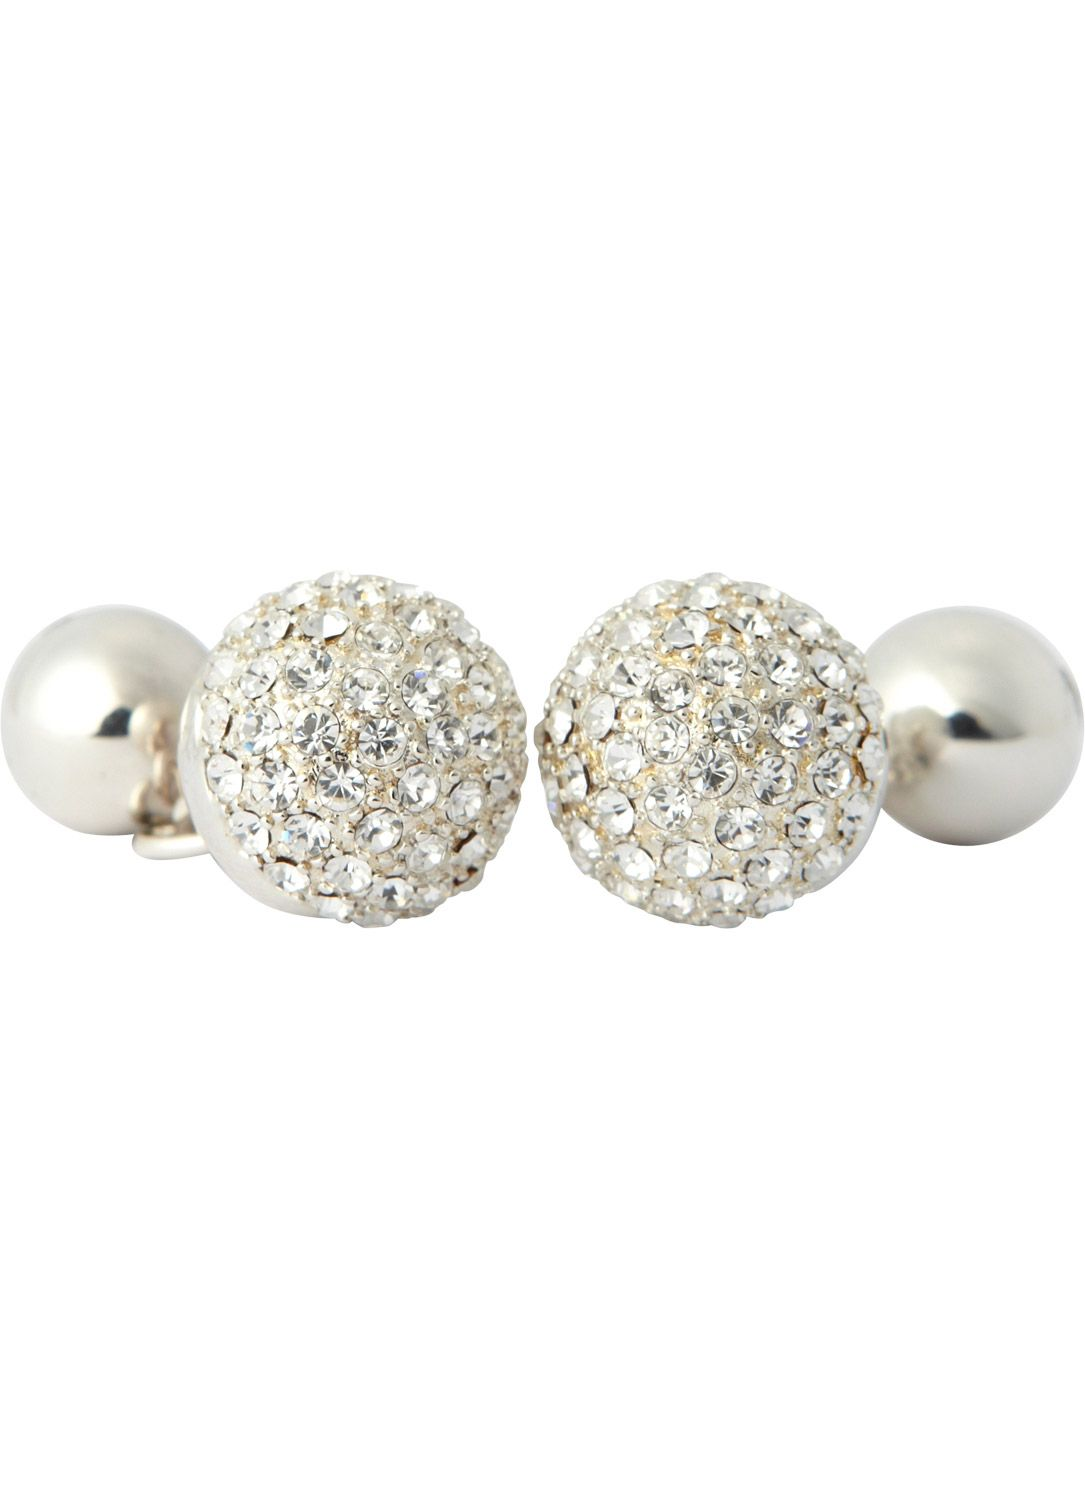 Crystal Ball Cufflink All Women S Accessories Austin Reed Competition Myofficestyle Pintowin Women S Accessories Stud Earrings Cufflinks